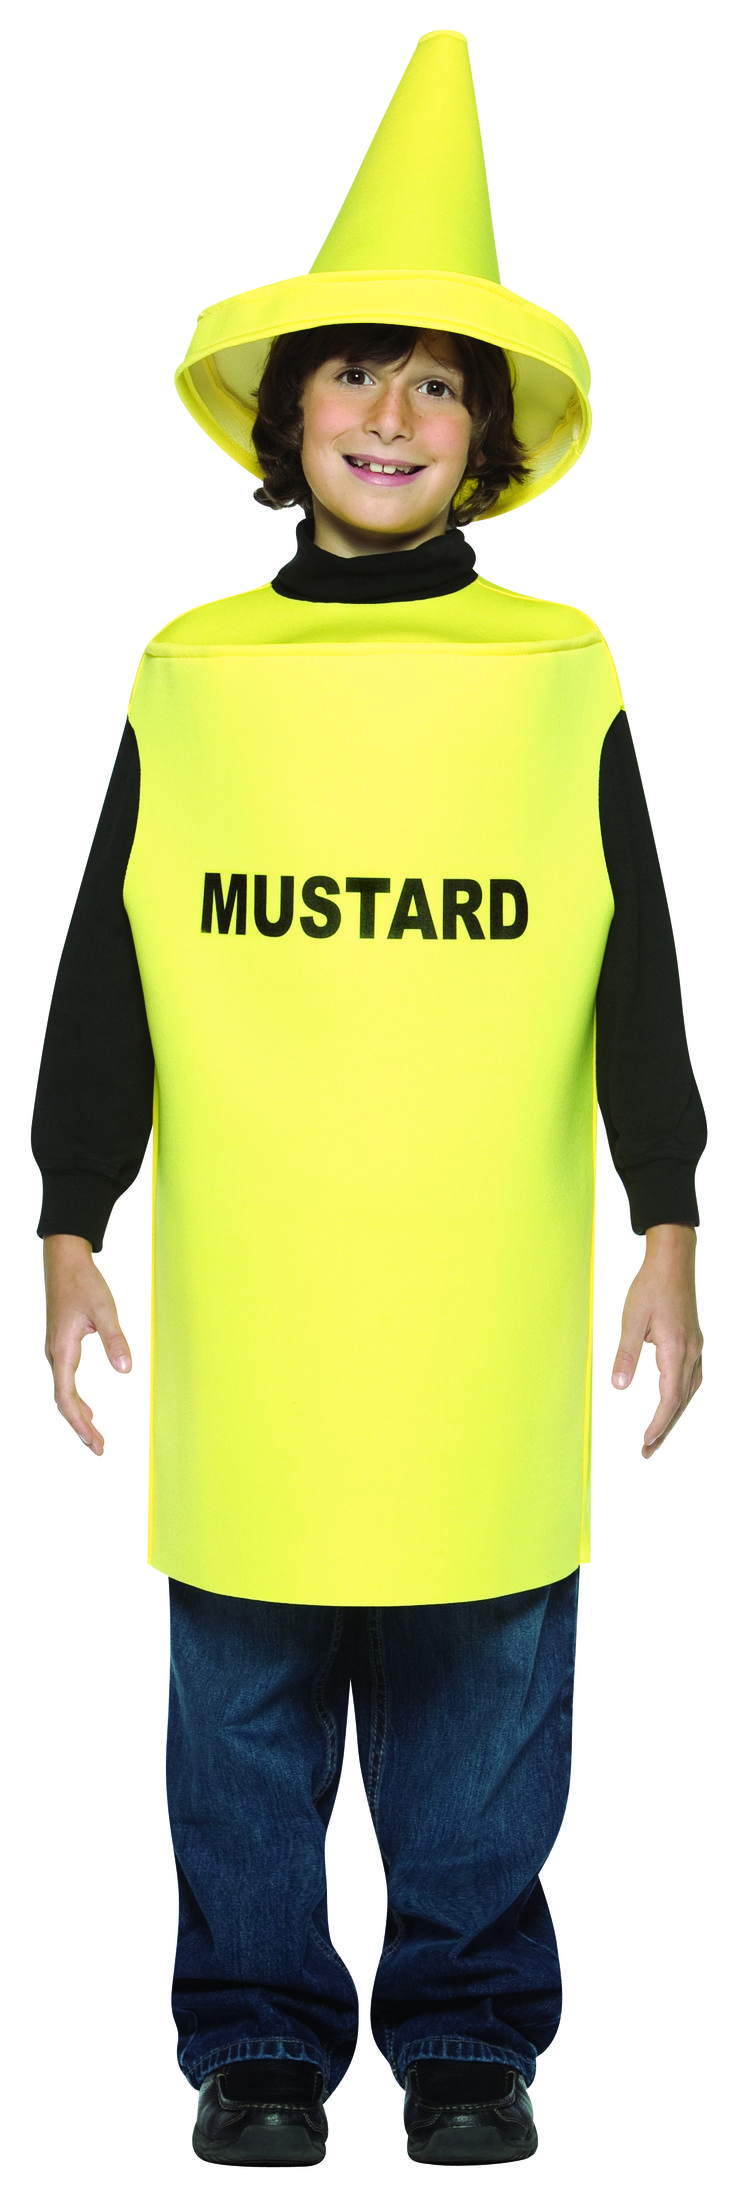 #976 Everything is better with mustard, including you!  The Mustard costume is a spicy and a fun way to dress up.  Goes great with Ketchup Costume.  Polyester. Sizes 7-10. #mustard #summerfun #summerevent #halloween #barbecue